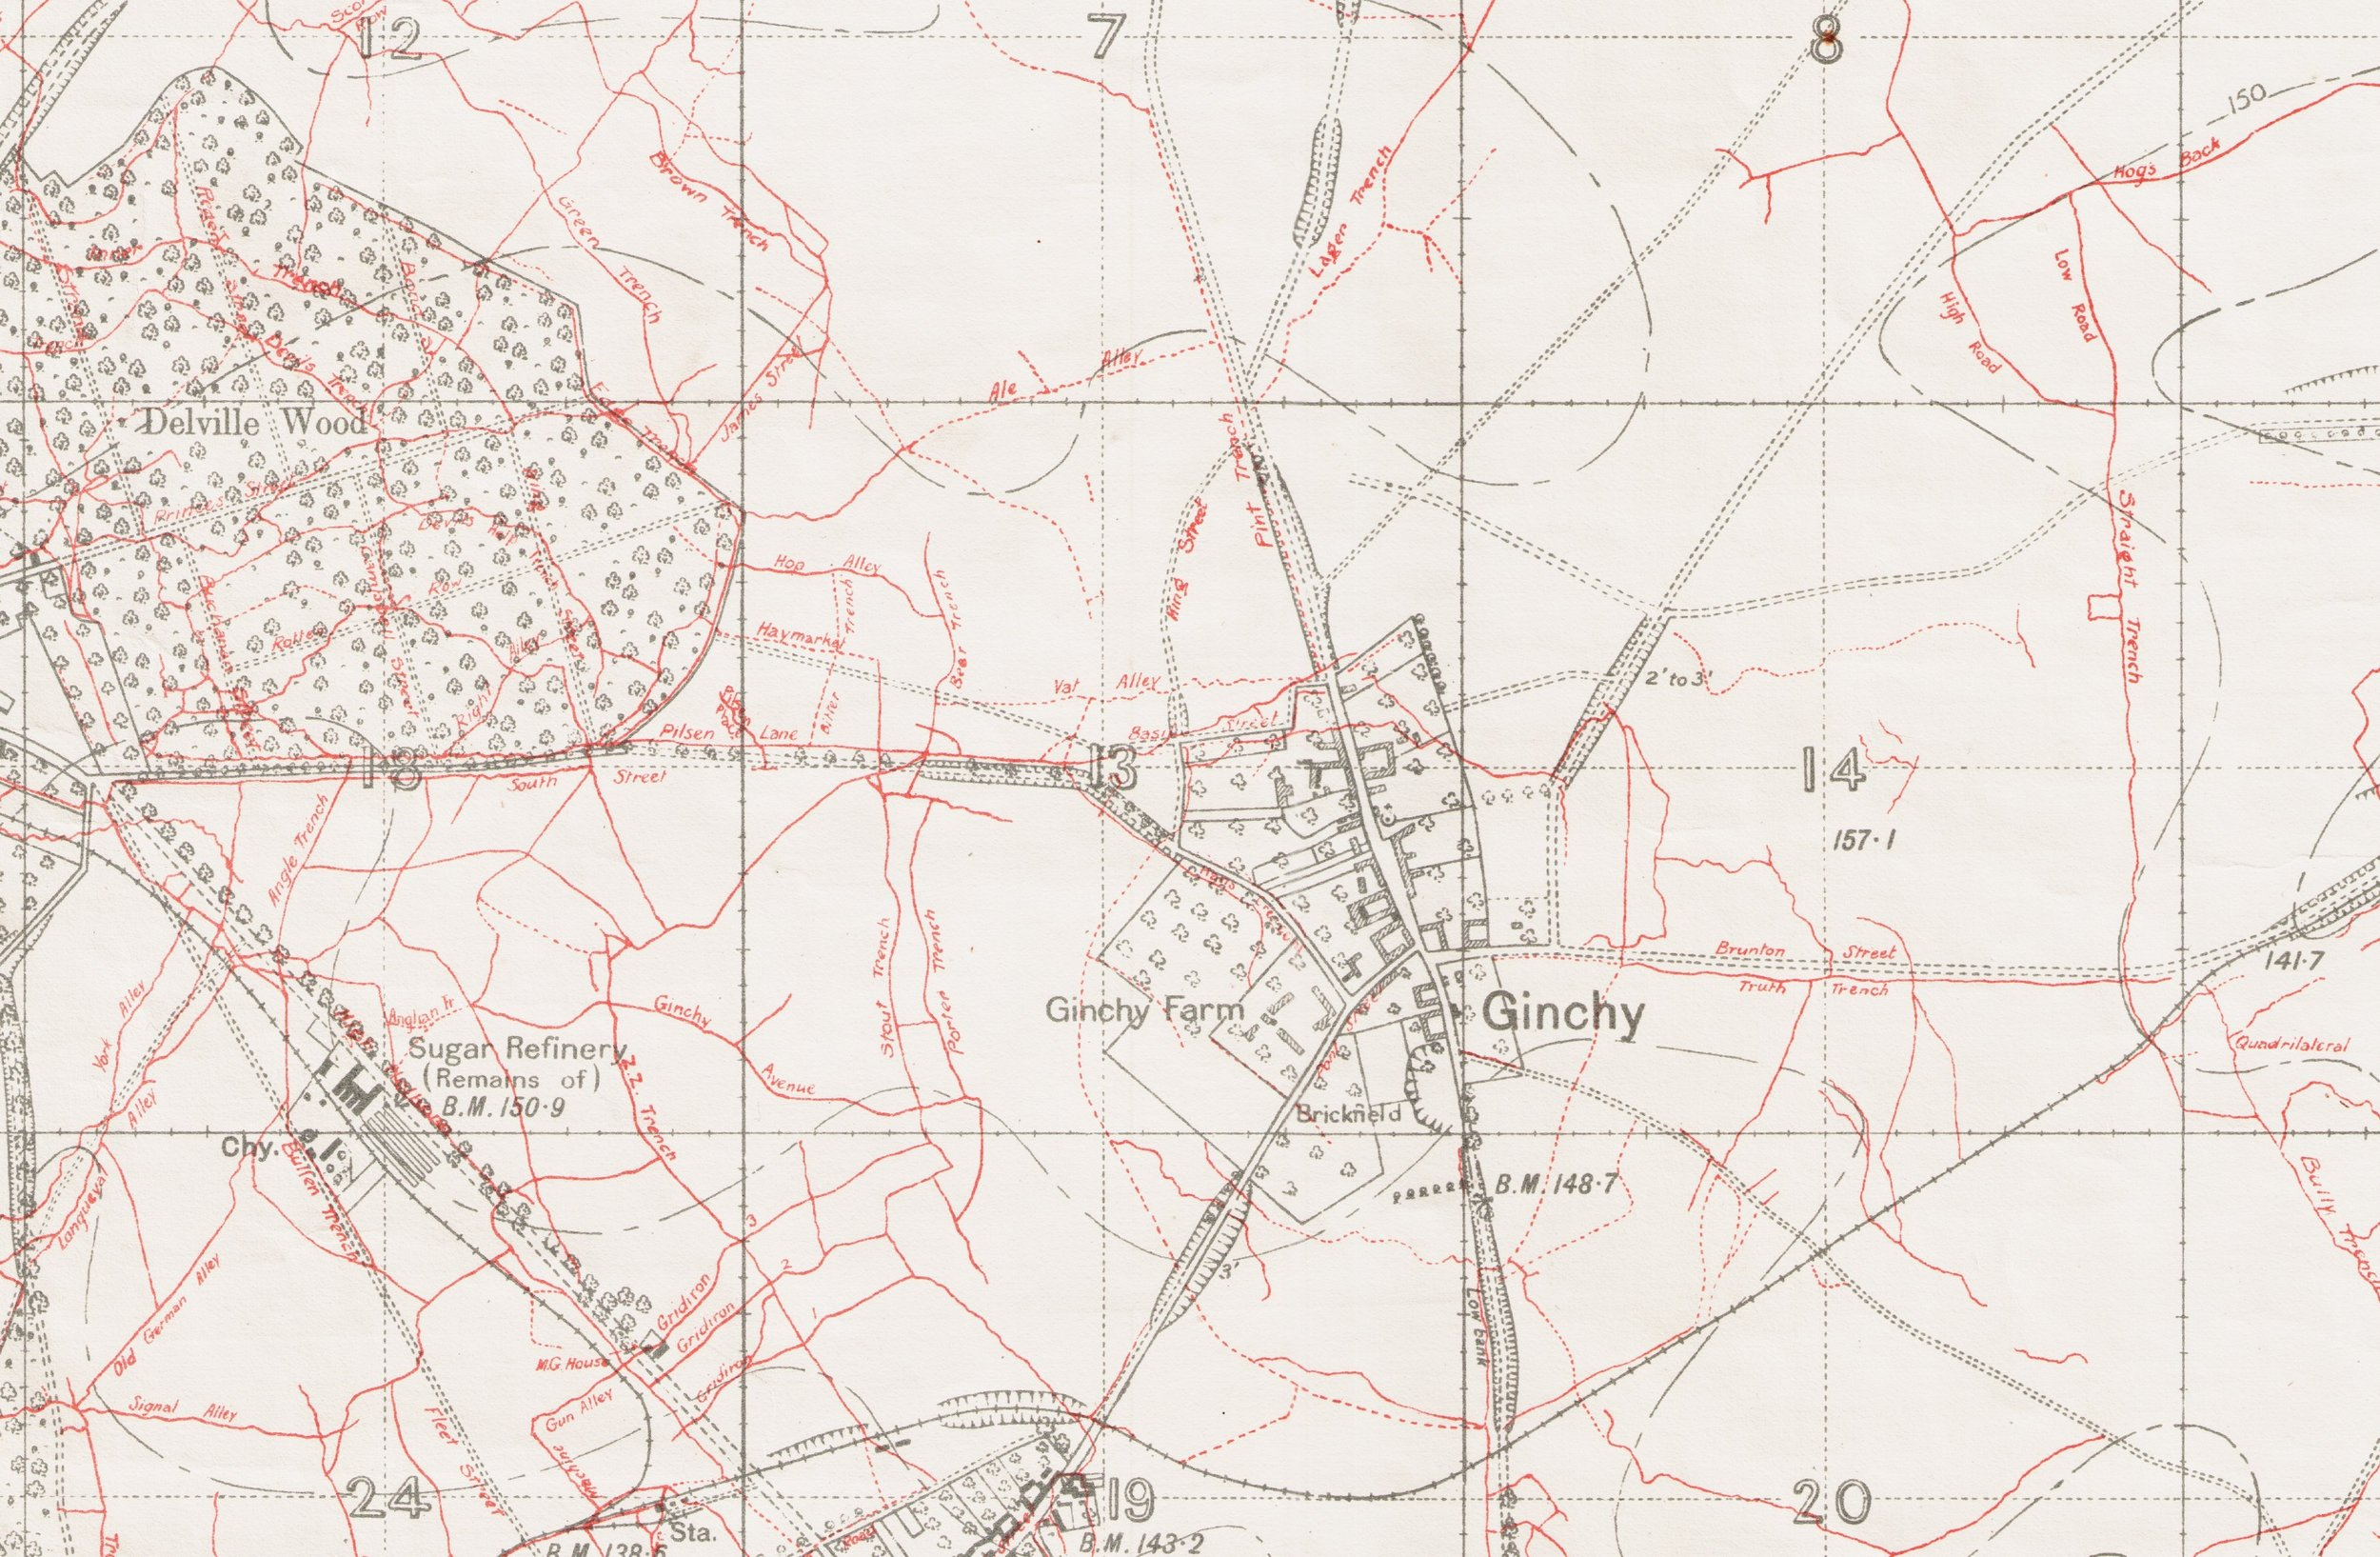 1916 Trench Map of Delville Wood (left) / Ginchy village (right)